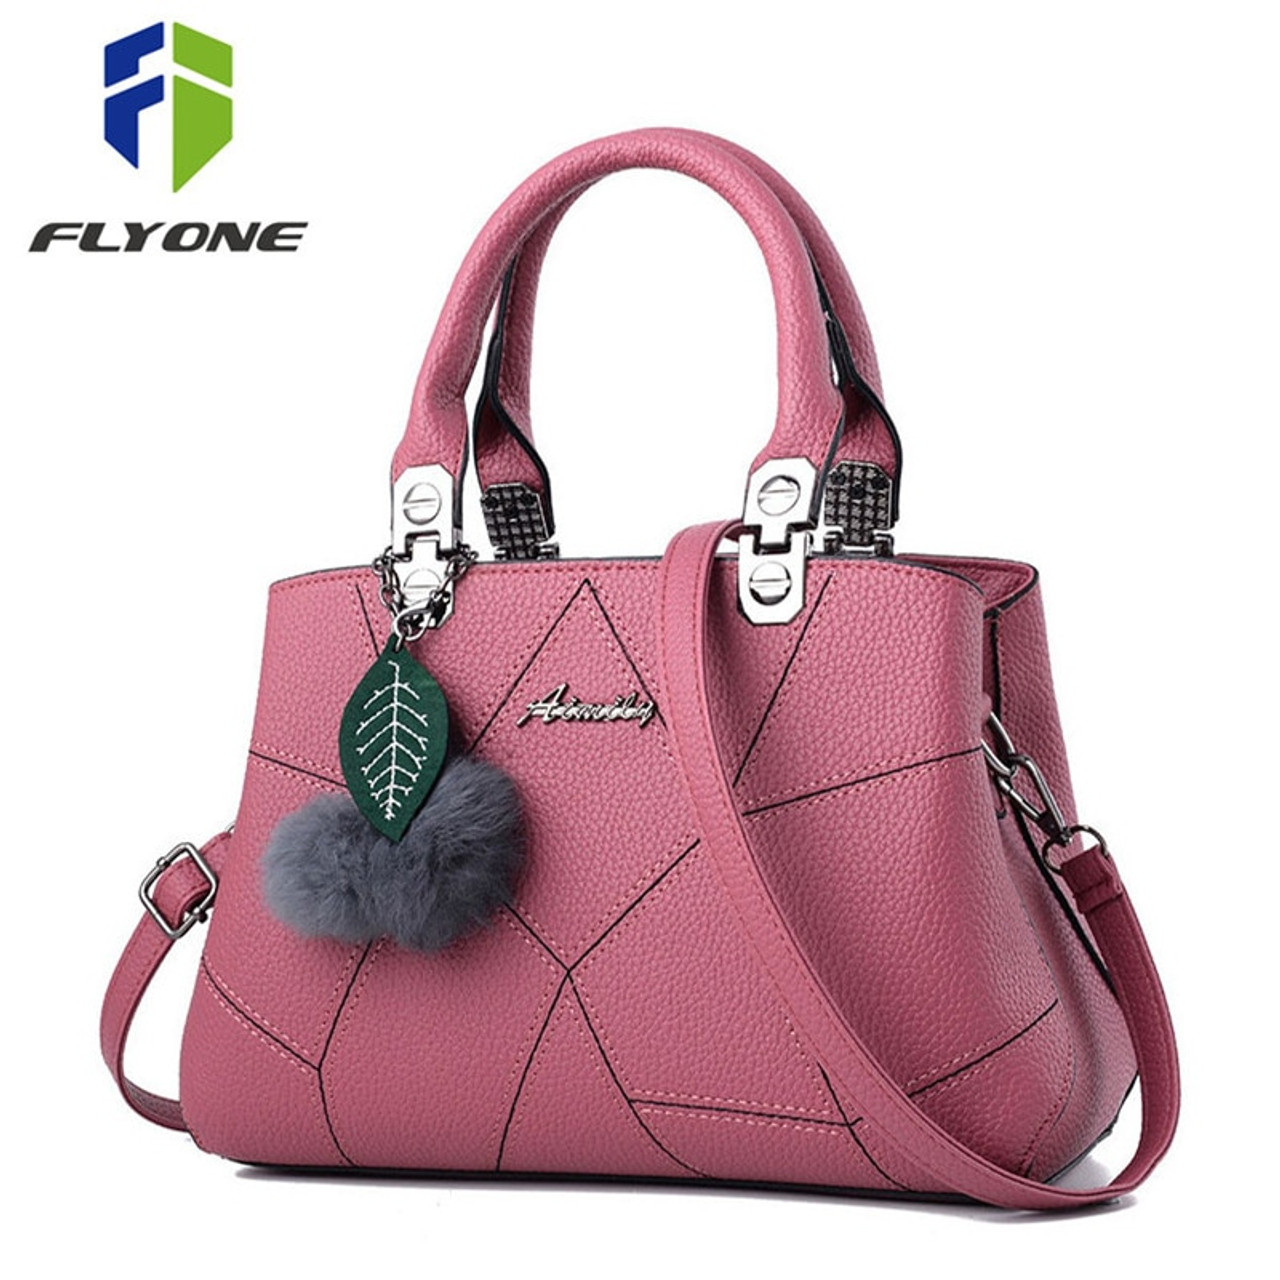 34fbe34763 New Sale PU Leather Women Handbags with Fur Top-Handle Women Bag Purse  Ladies Shoulder ...